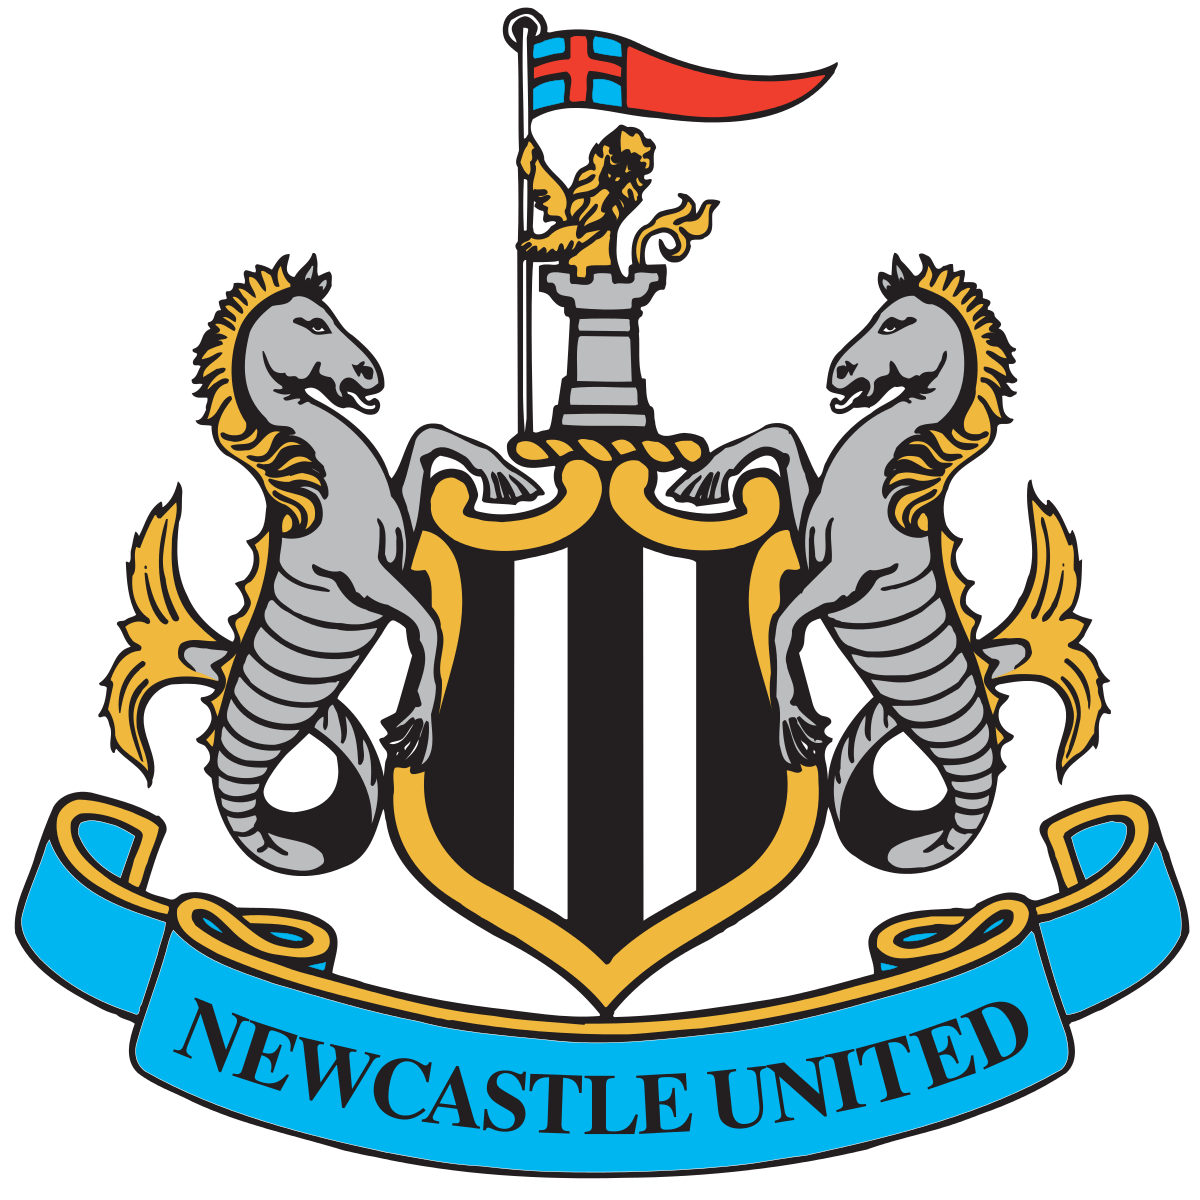 Talk Newcastle United